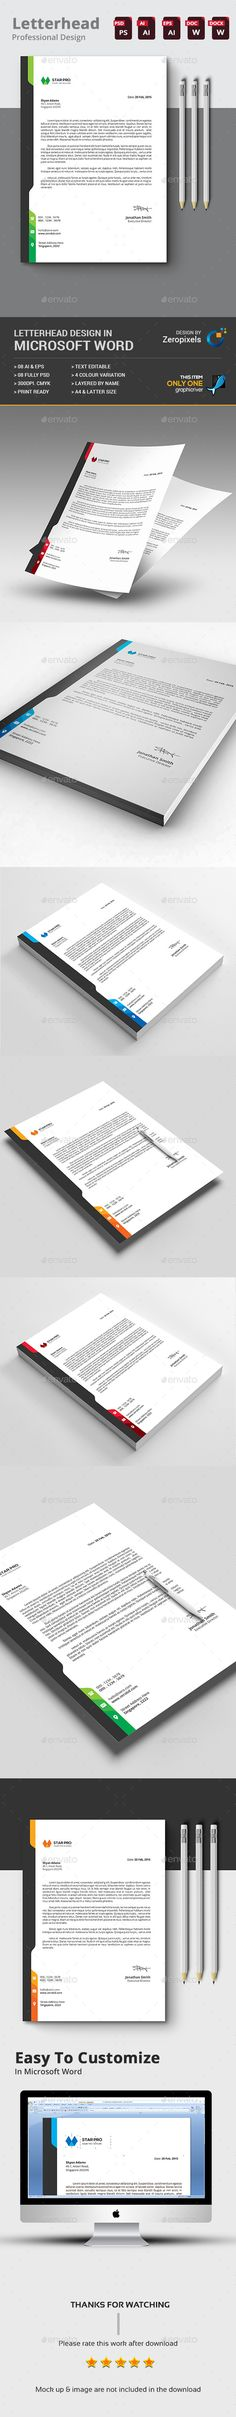 Buy Corporate Letterhead by zeropixels on GraphicRiver. Invoice Design Template, Letterhead Design, Letterhead Template, Stationery Design, Psd Templates, Design Templates, Corporate Identity Design, Brand Identity Design, Business Branding